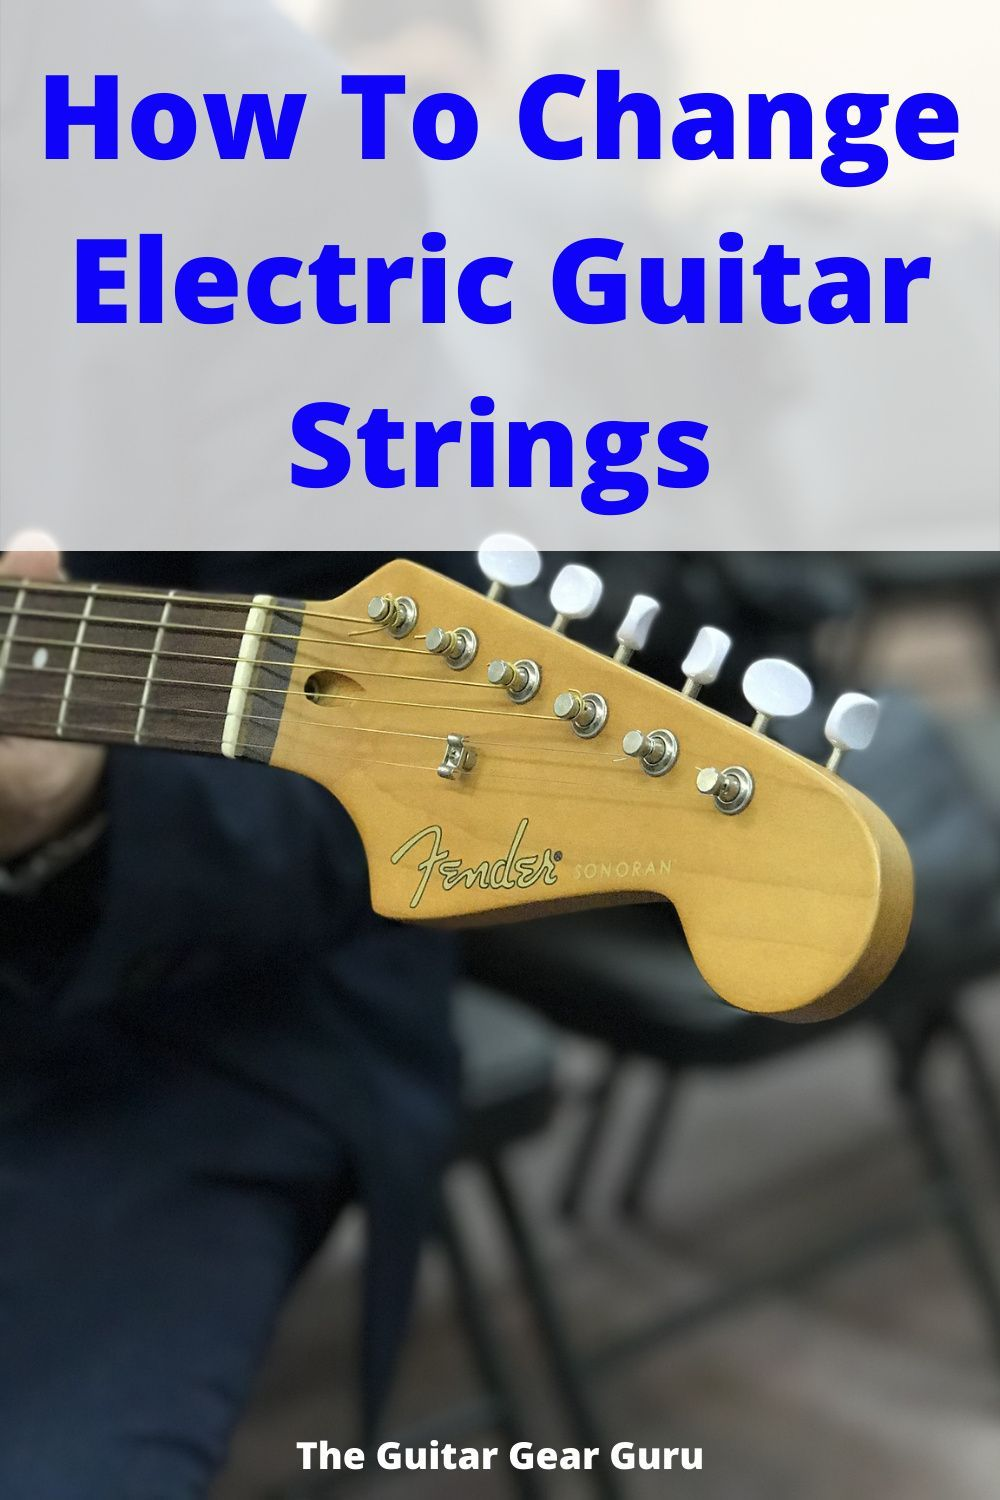 How To Change Electric Guitar Strings Guitar Electric Guitar Electric Guitar Strings